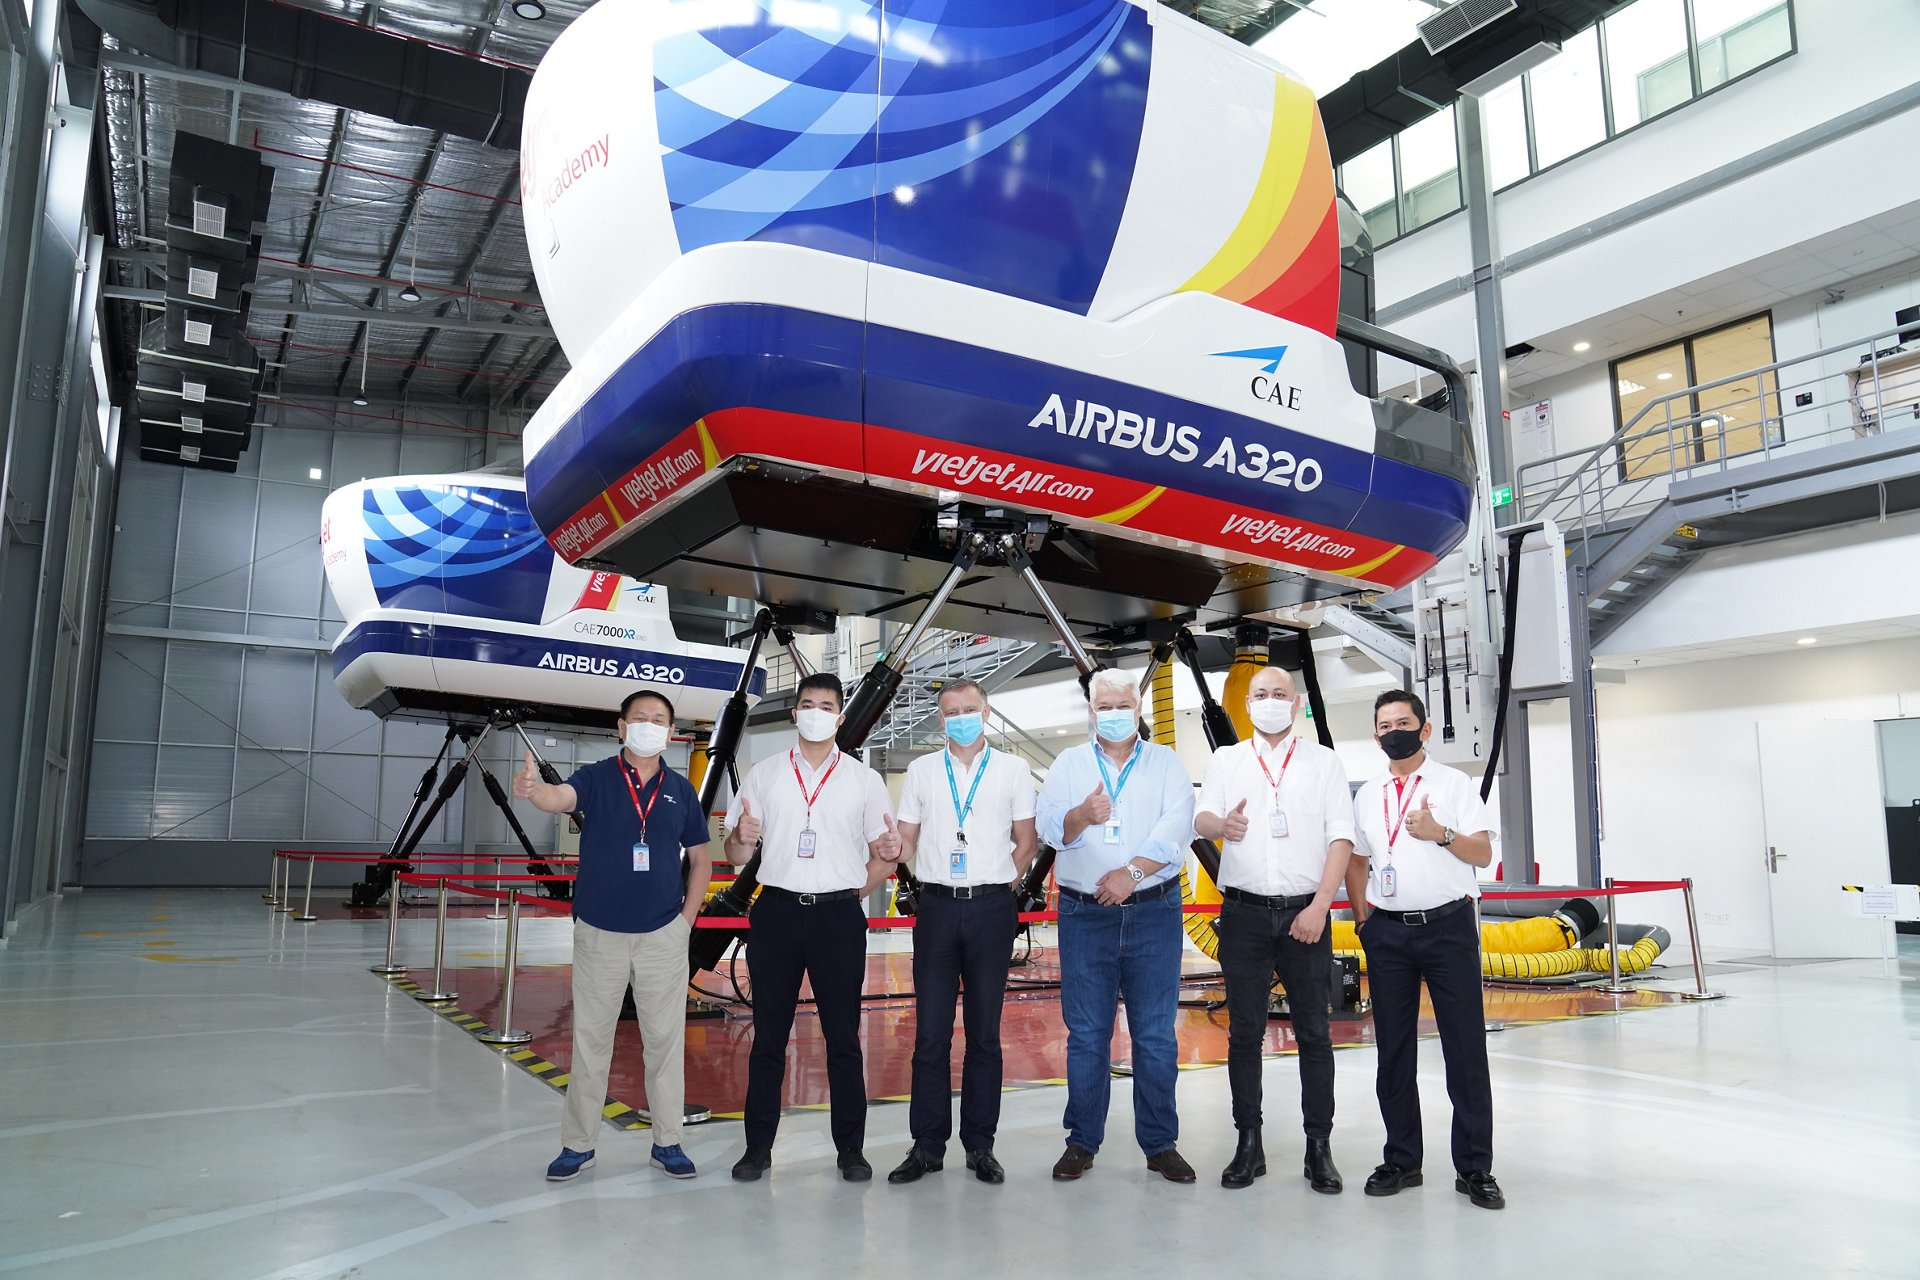 AVTC owns two A320 Full Flight Simulators and two A320 Flight Training Devices, which are located at the Vietjet Aviation Academy (VJAA) in Ho Chi Minh City and are operated by Airbus and Vietjet.